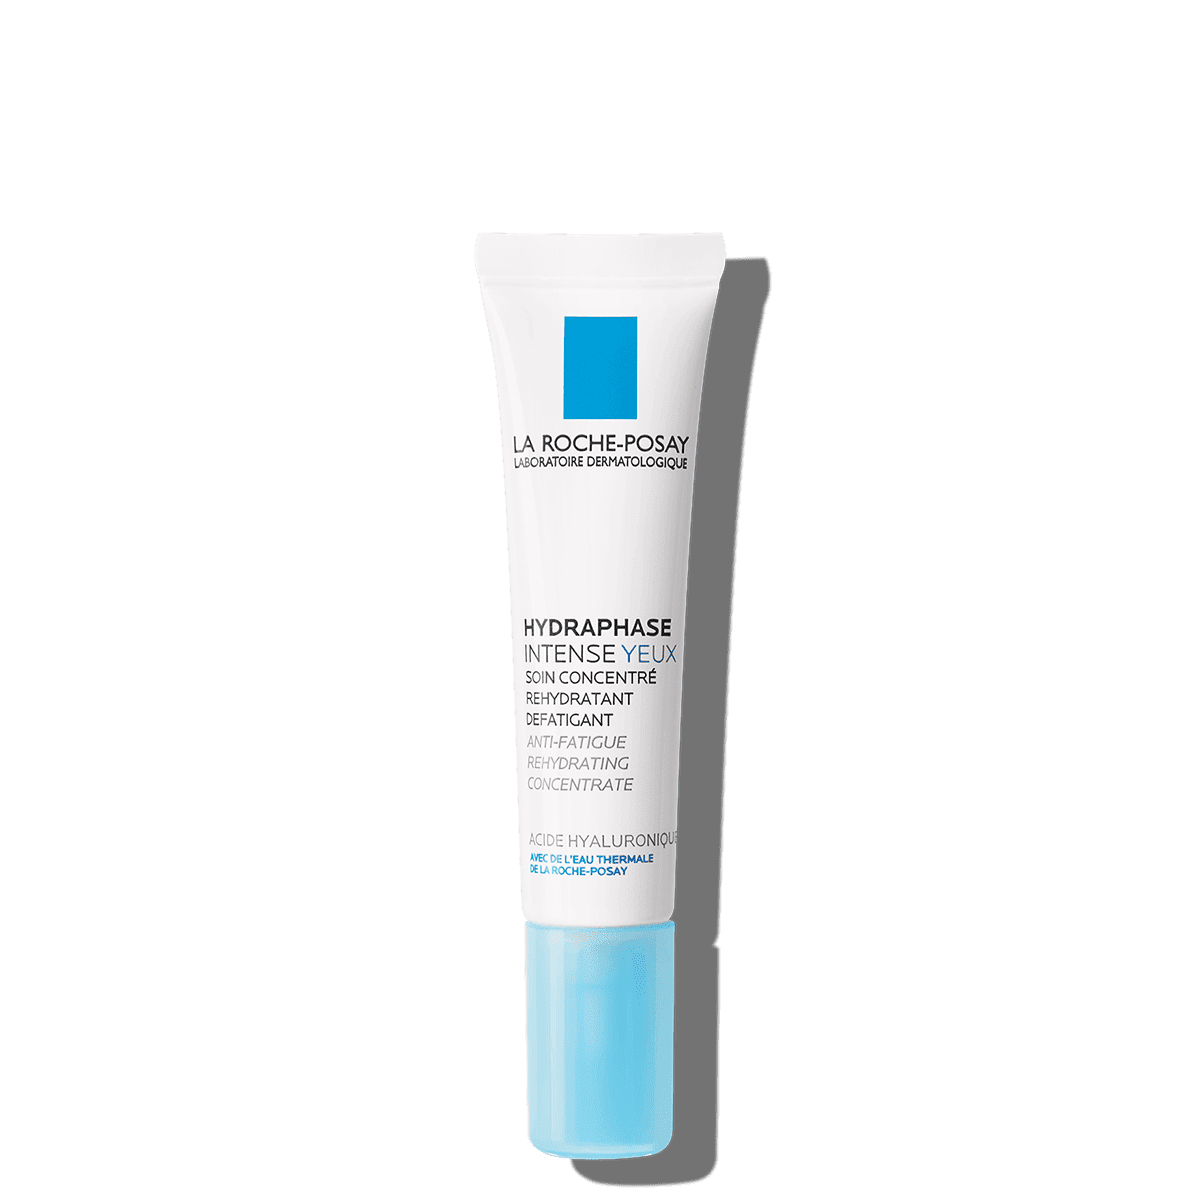 La Roche Posay ProductPage Hydraphase Intense Yeux 15ml 3337872412646